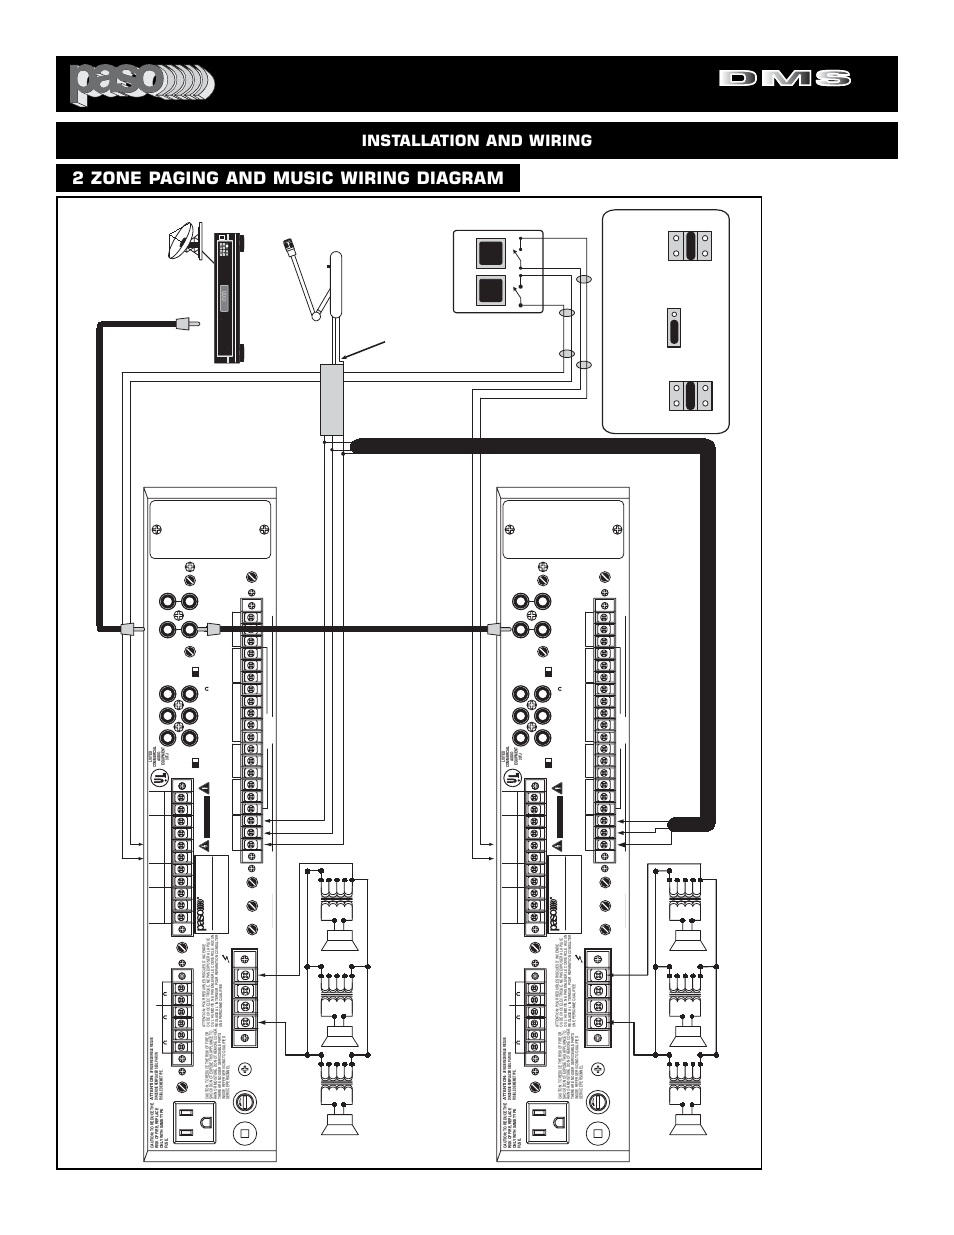 Digital Music Amplifiers 2 Zone Paging And Wiring Diagram Pa Speaker System Installation